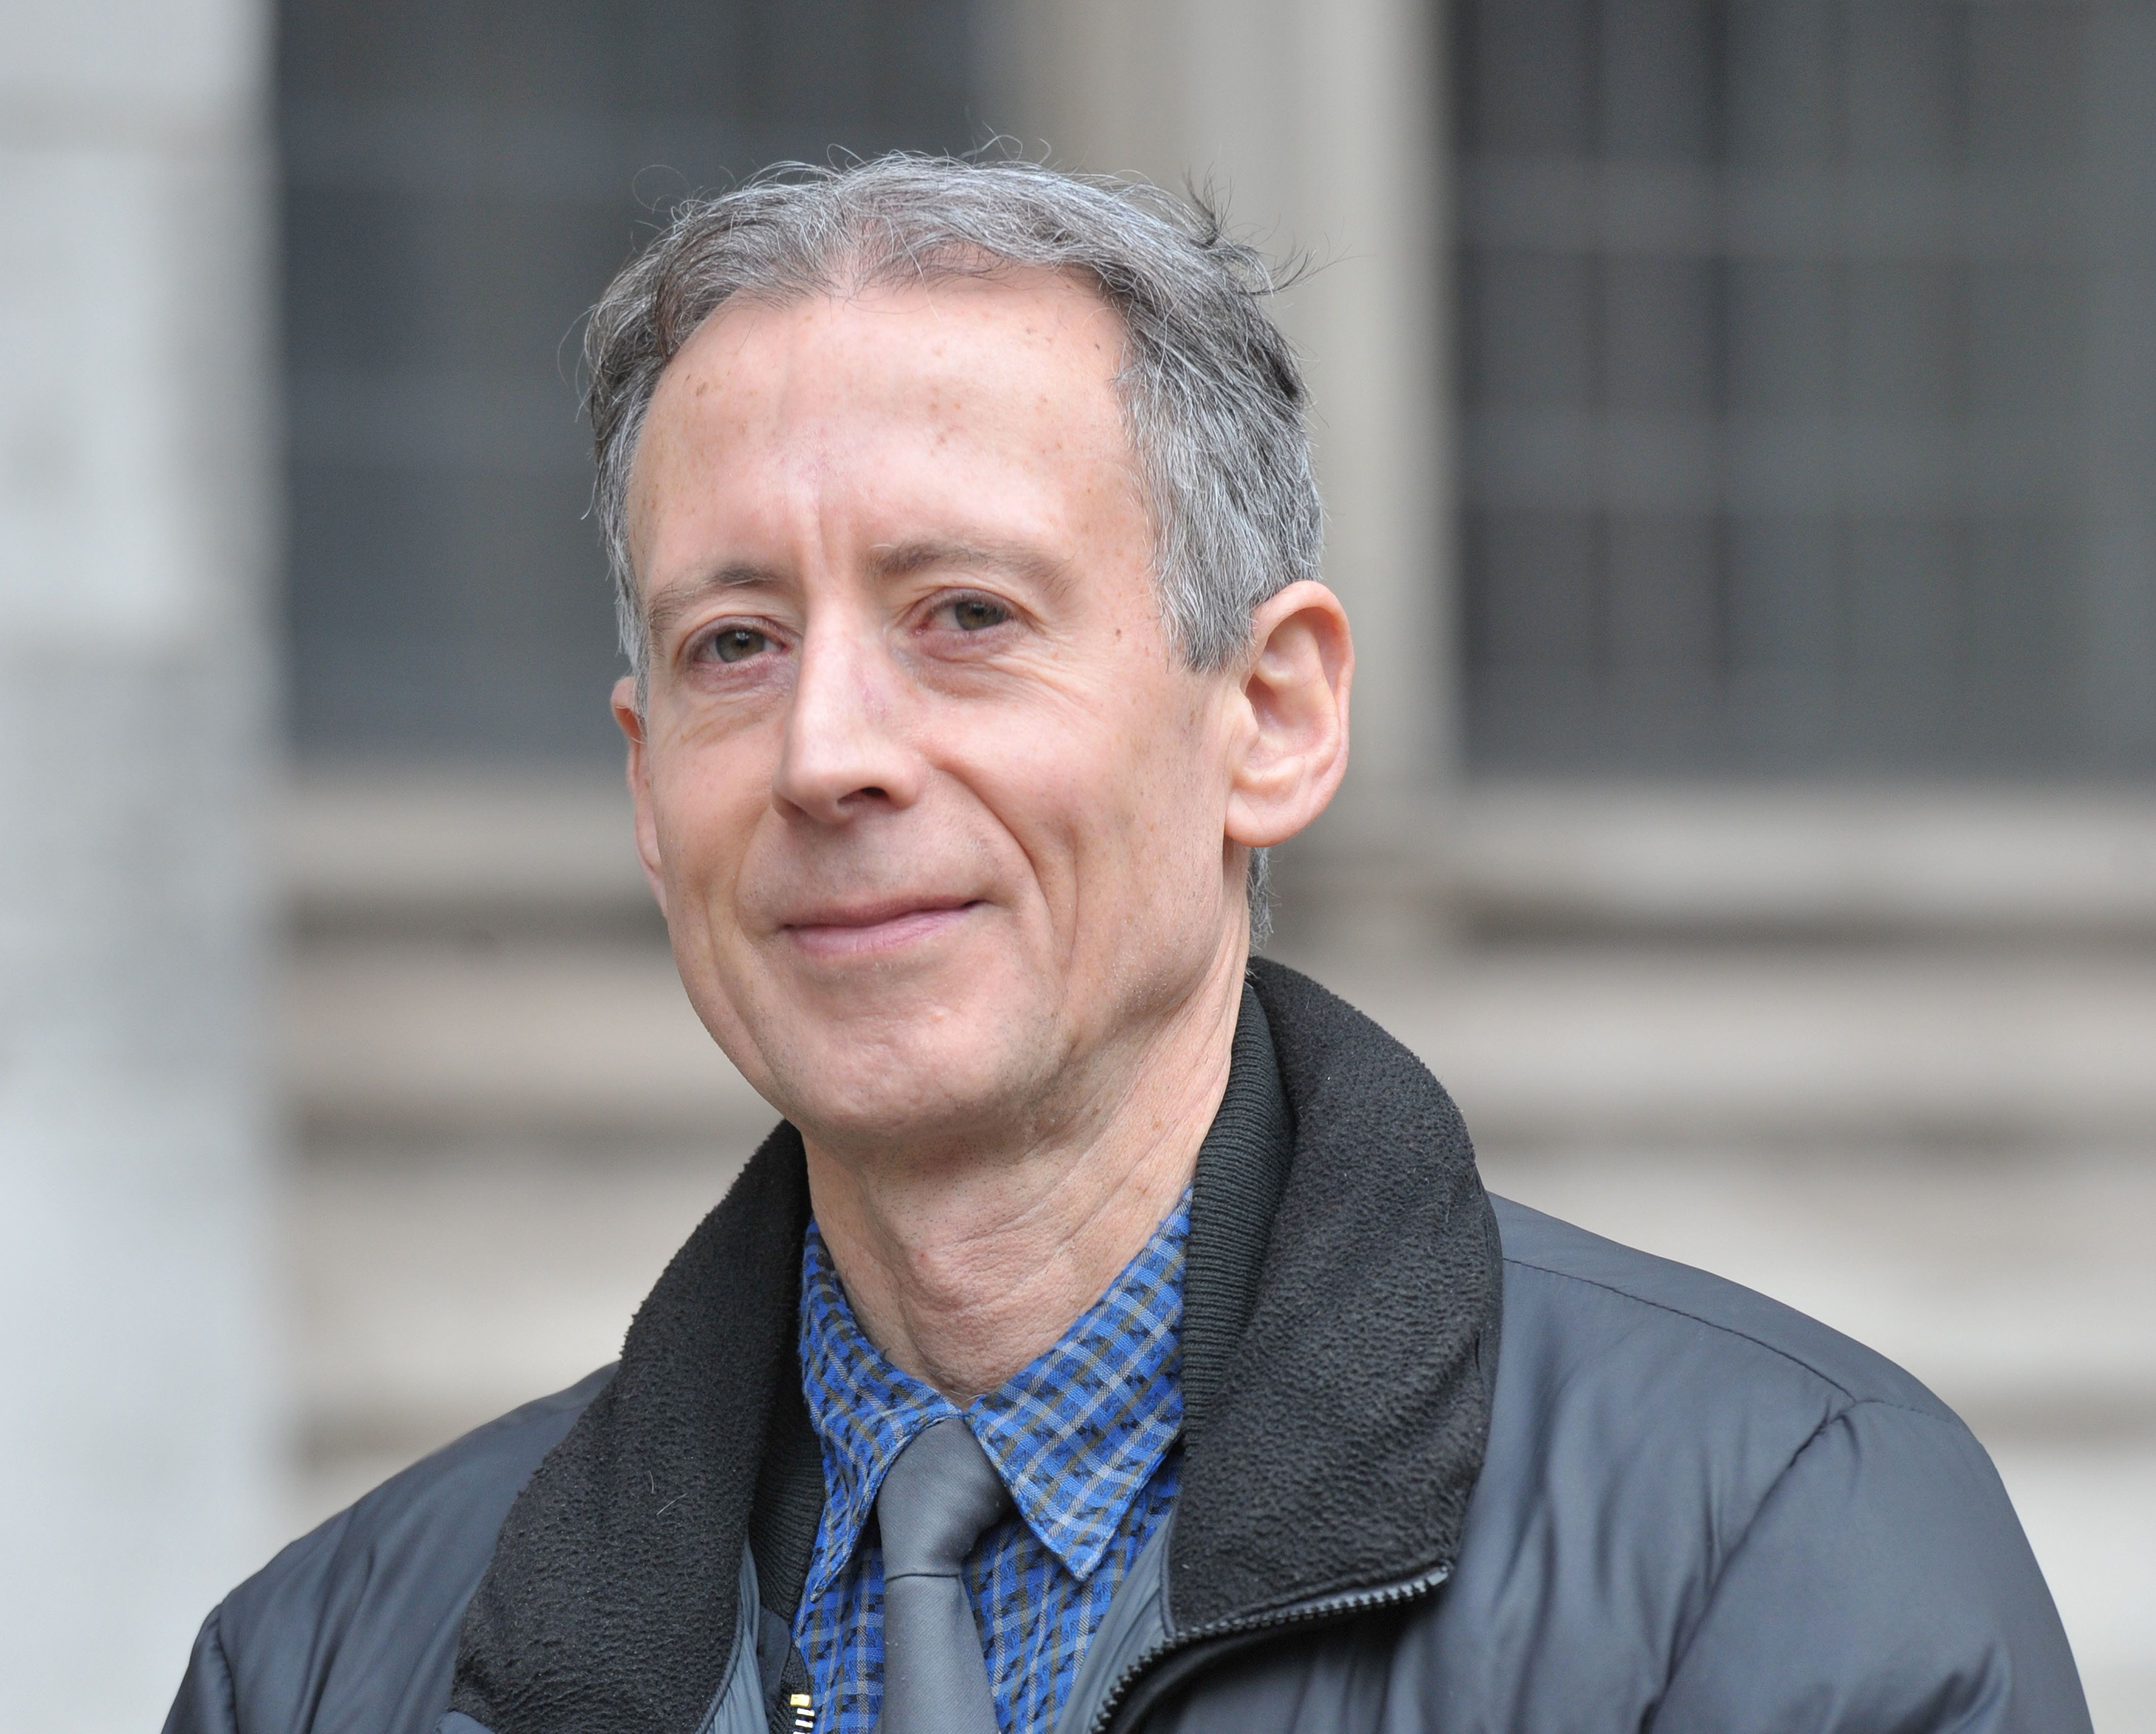 LOUD & PROUD: Peter Tatchell On Hollywood's 'Crazy' Celluloid